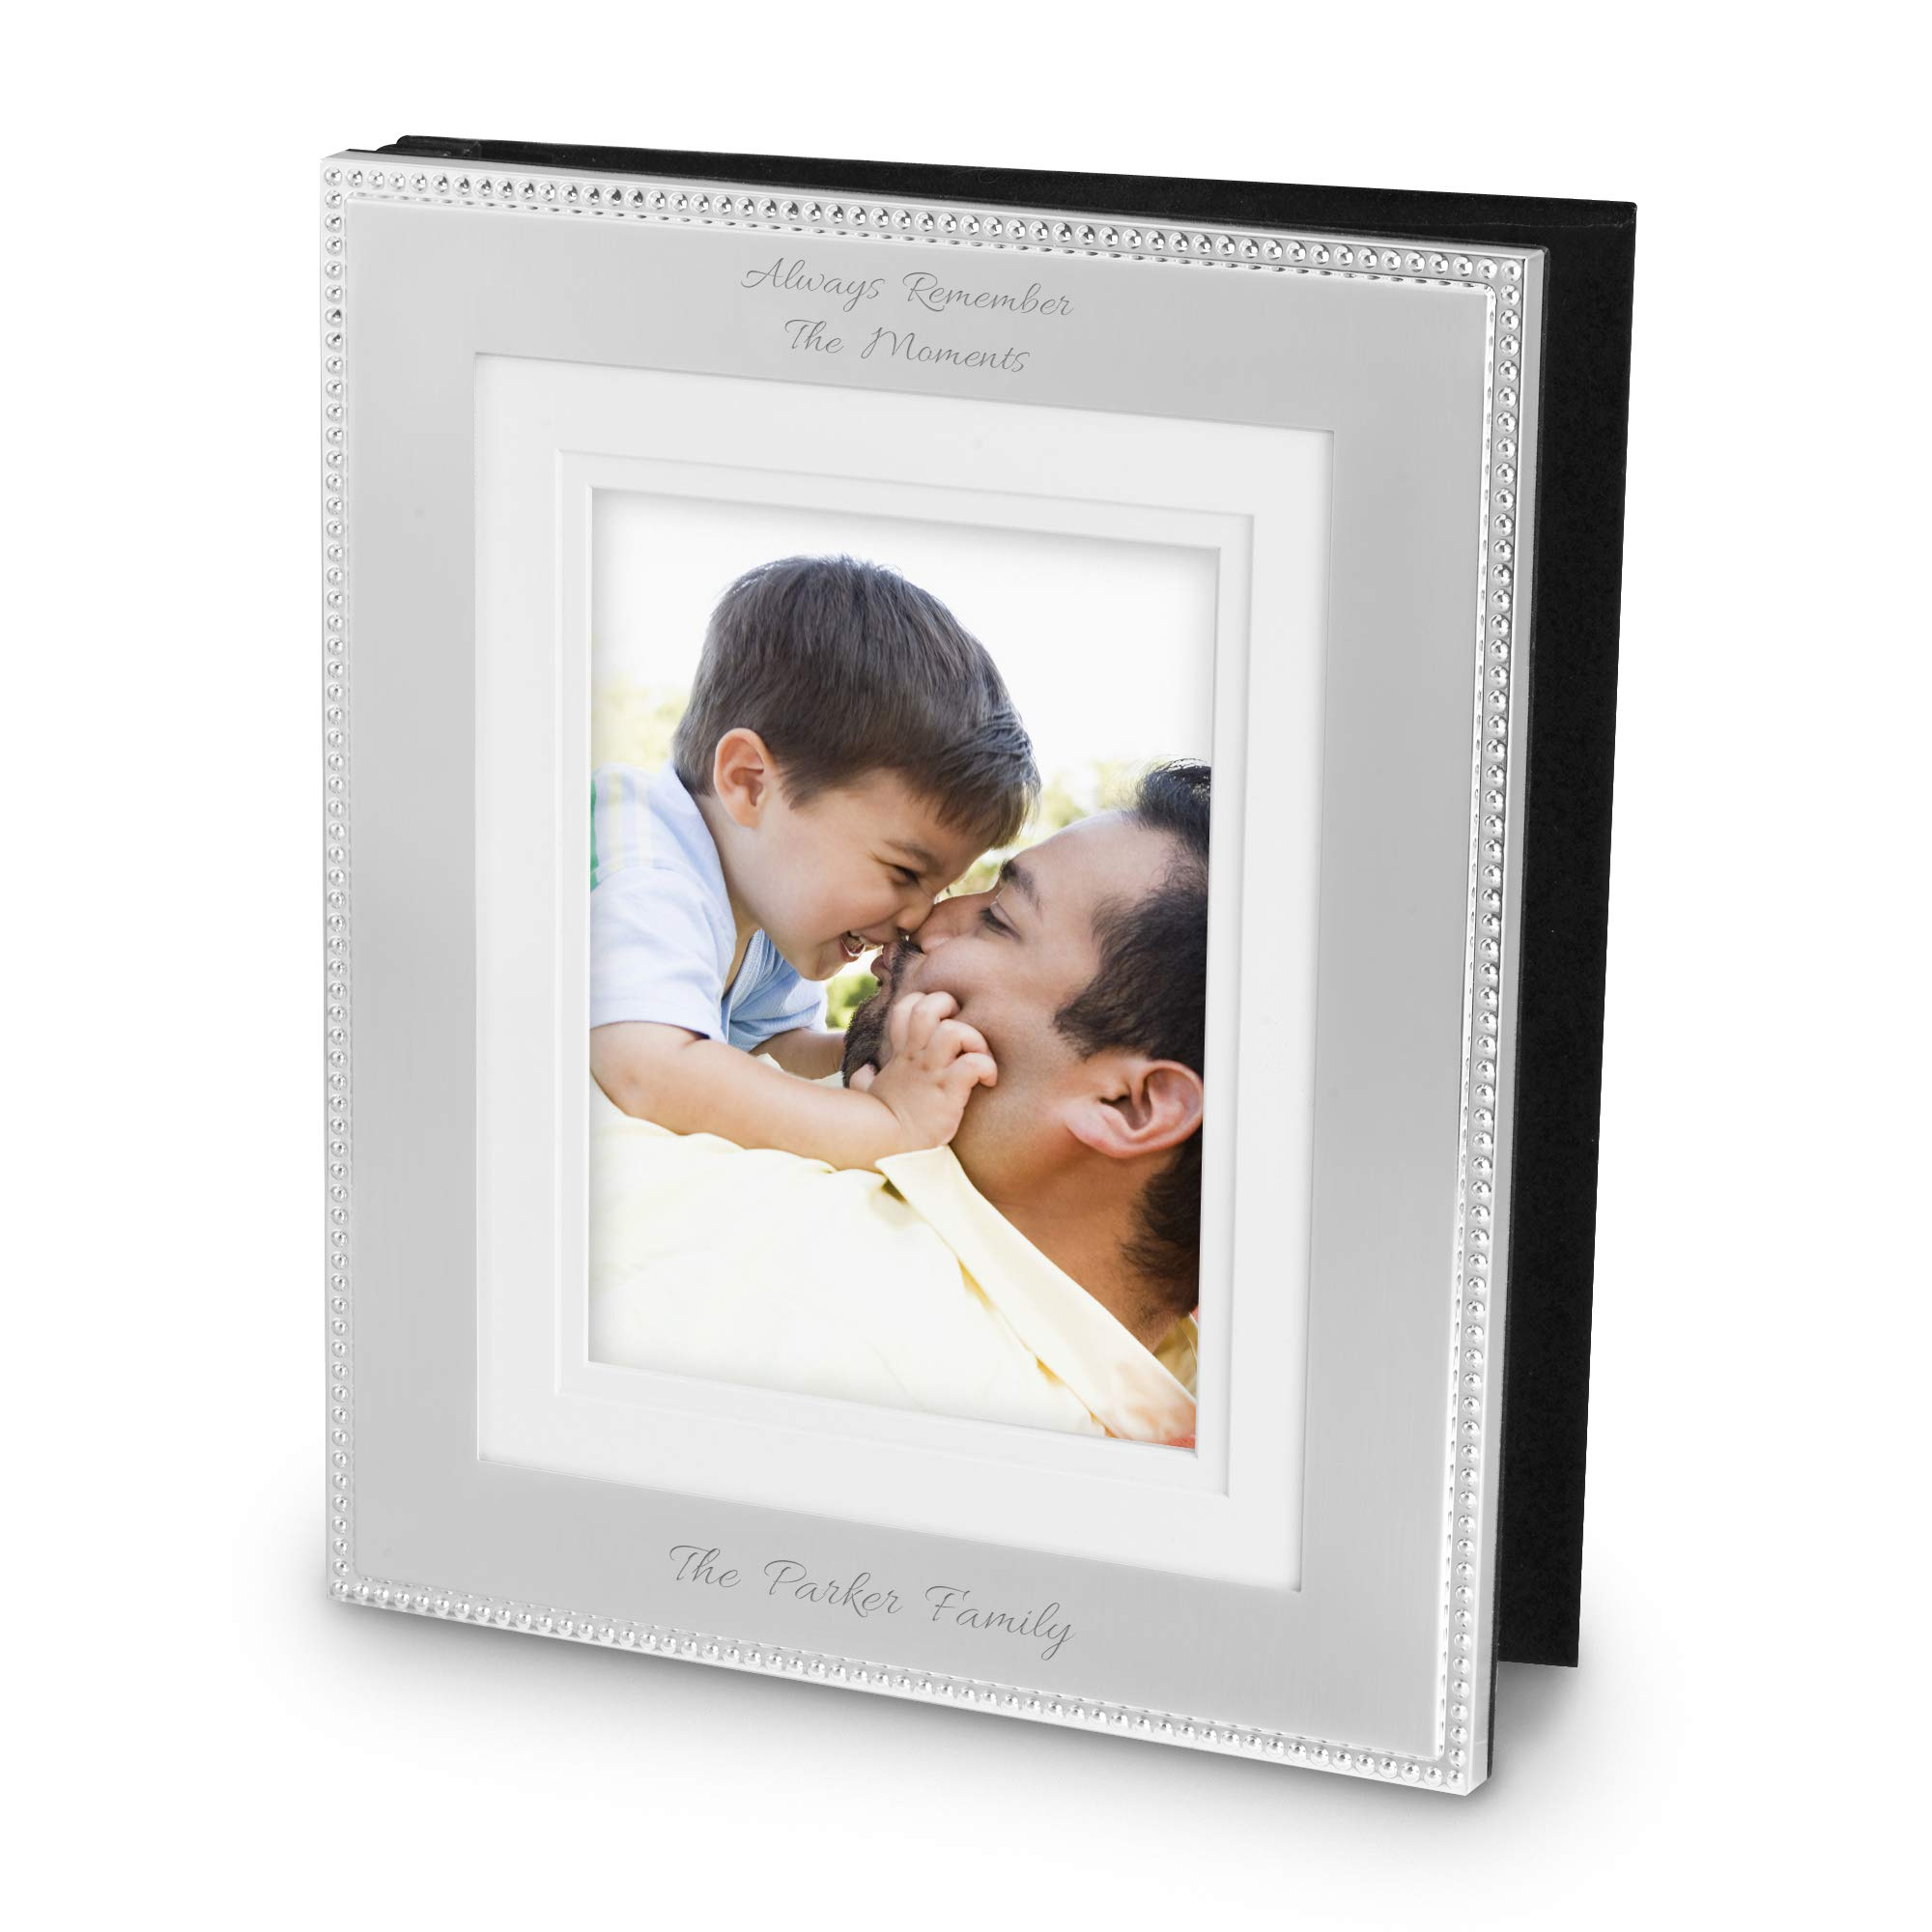 Things Remembered Personalized Beaded 8x10 Photo Album with Engraving Included